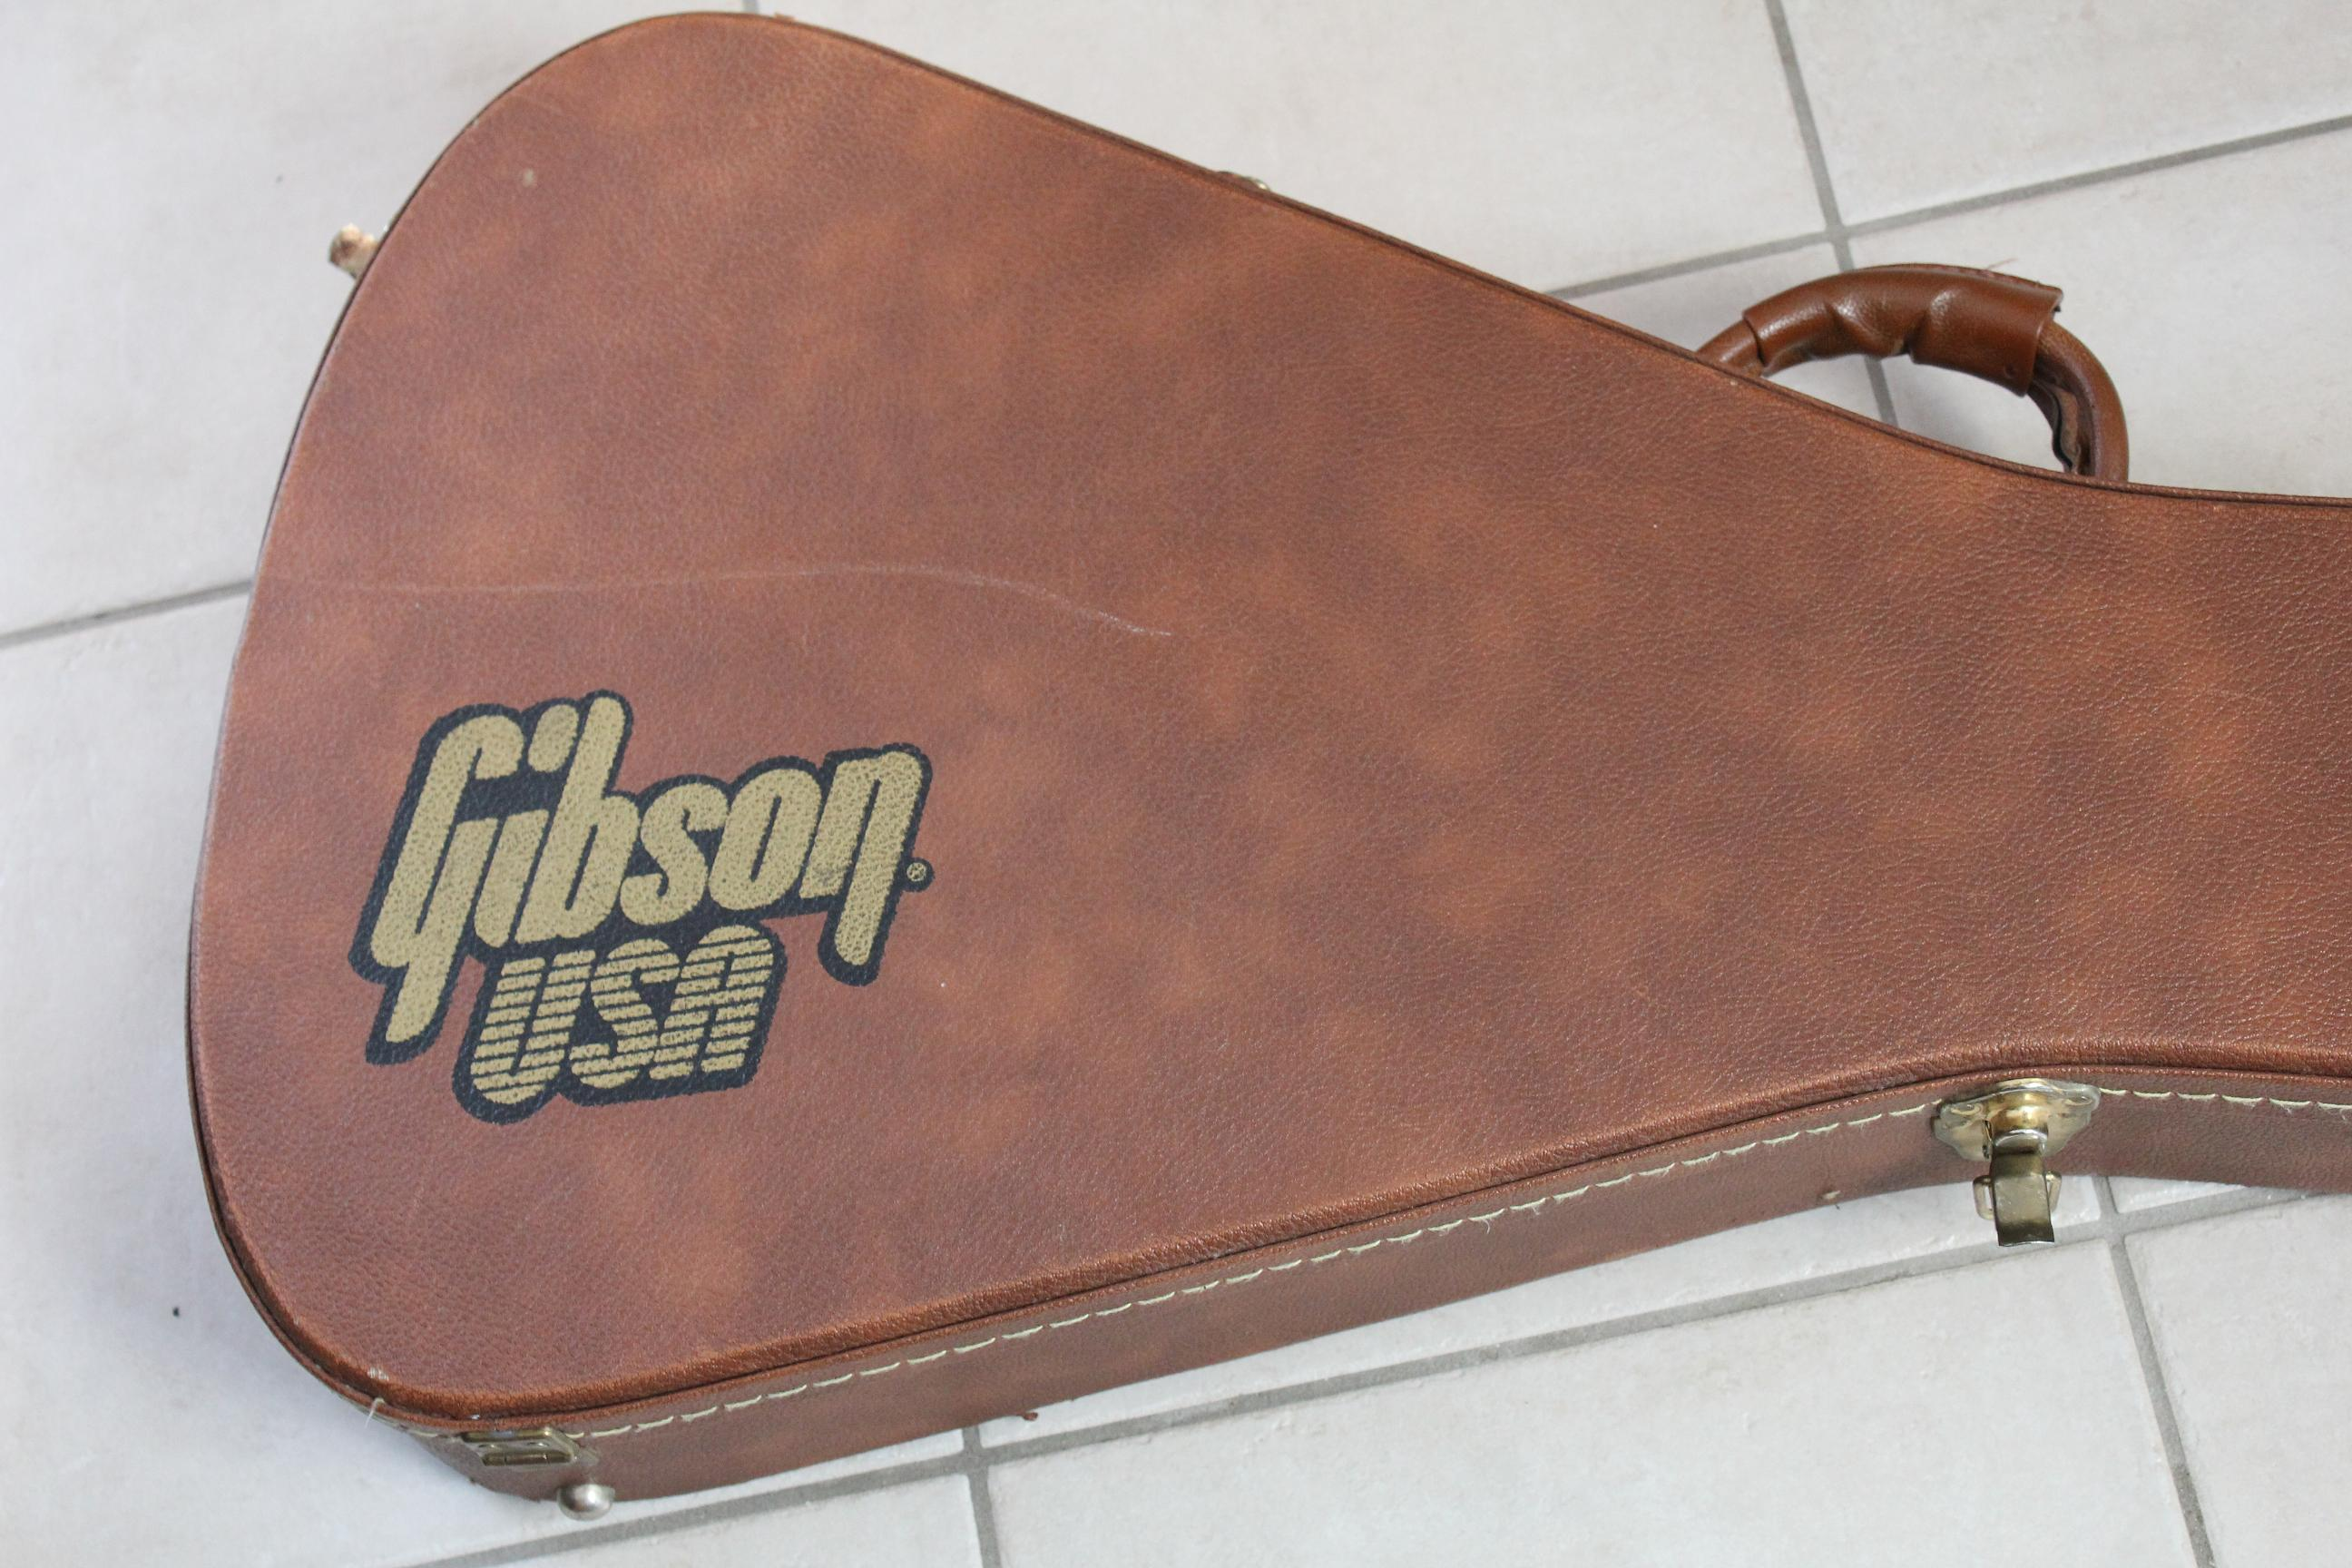 Gibson Flying V Case : gibson flying v hardshell case image 288381 audiofanzine ~ Hamham.info Haus und Dekorationen